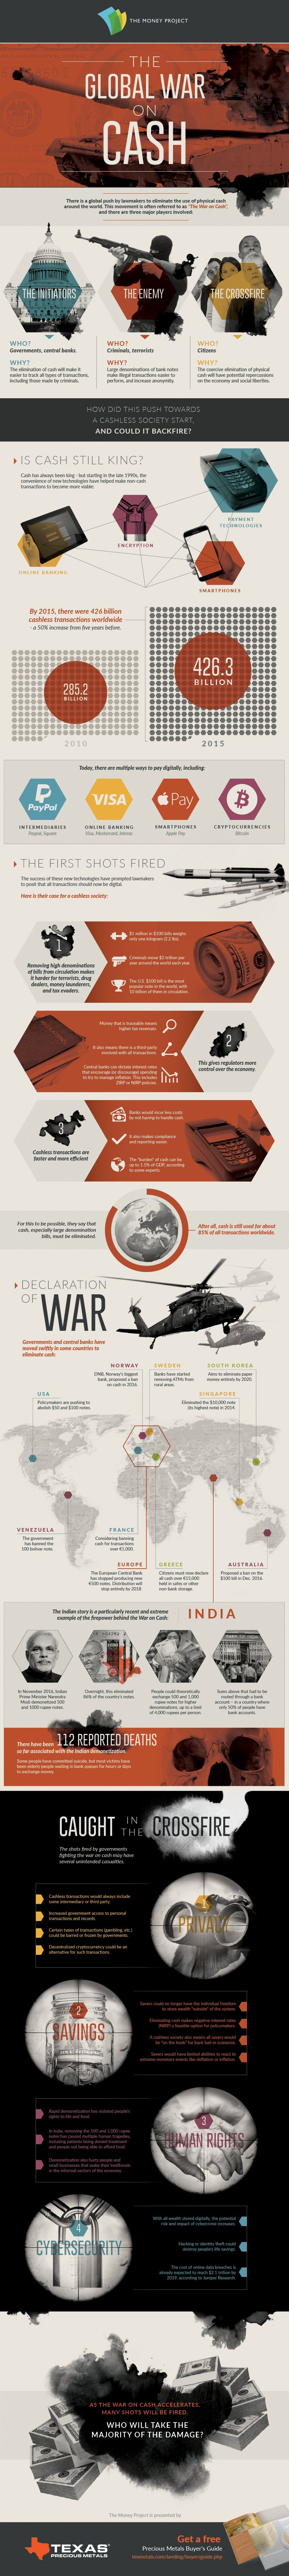 war-on-cash-infographic